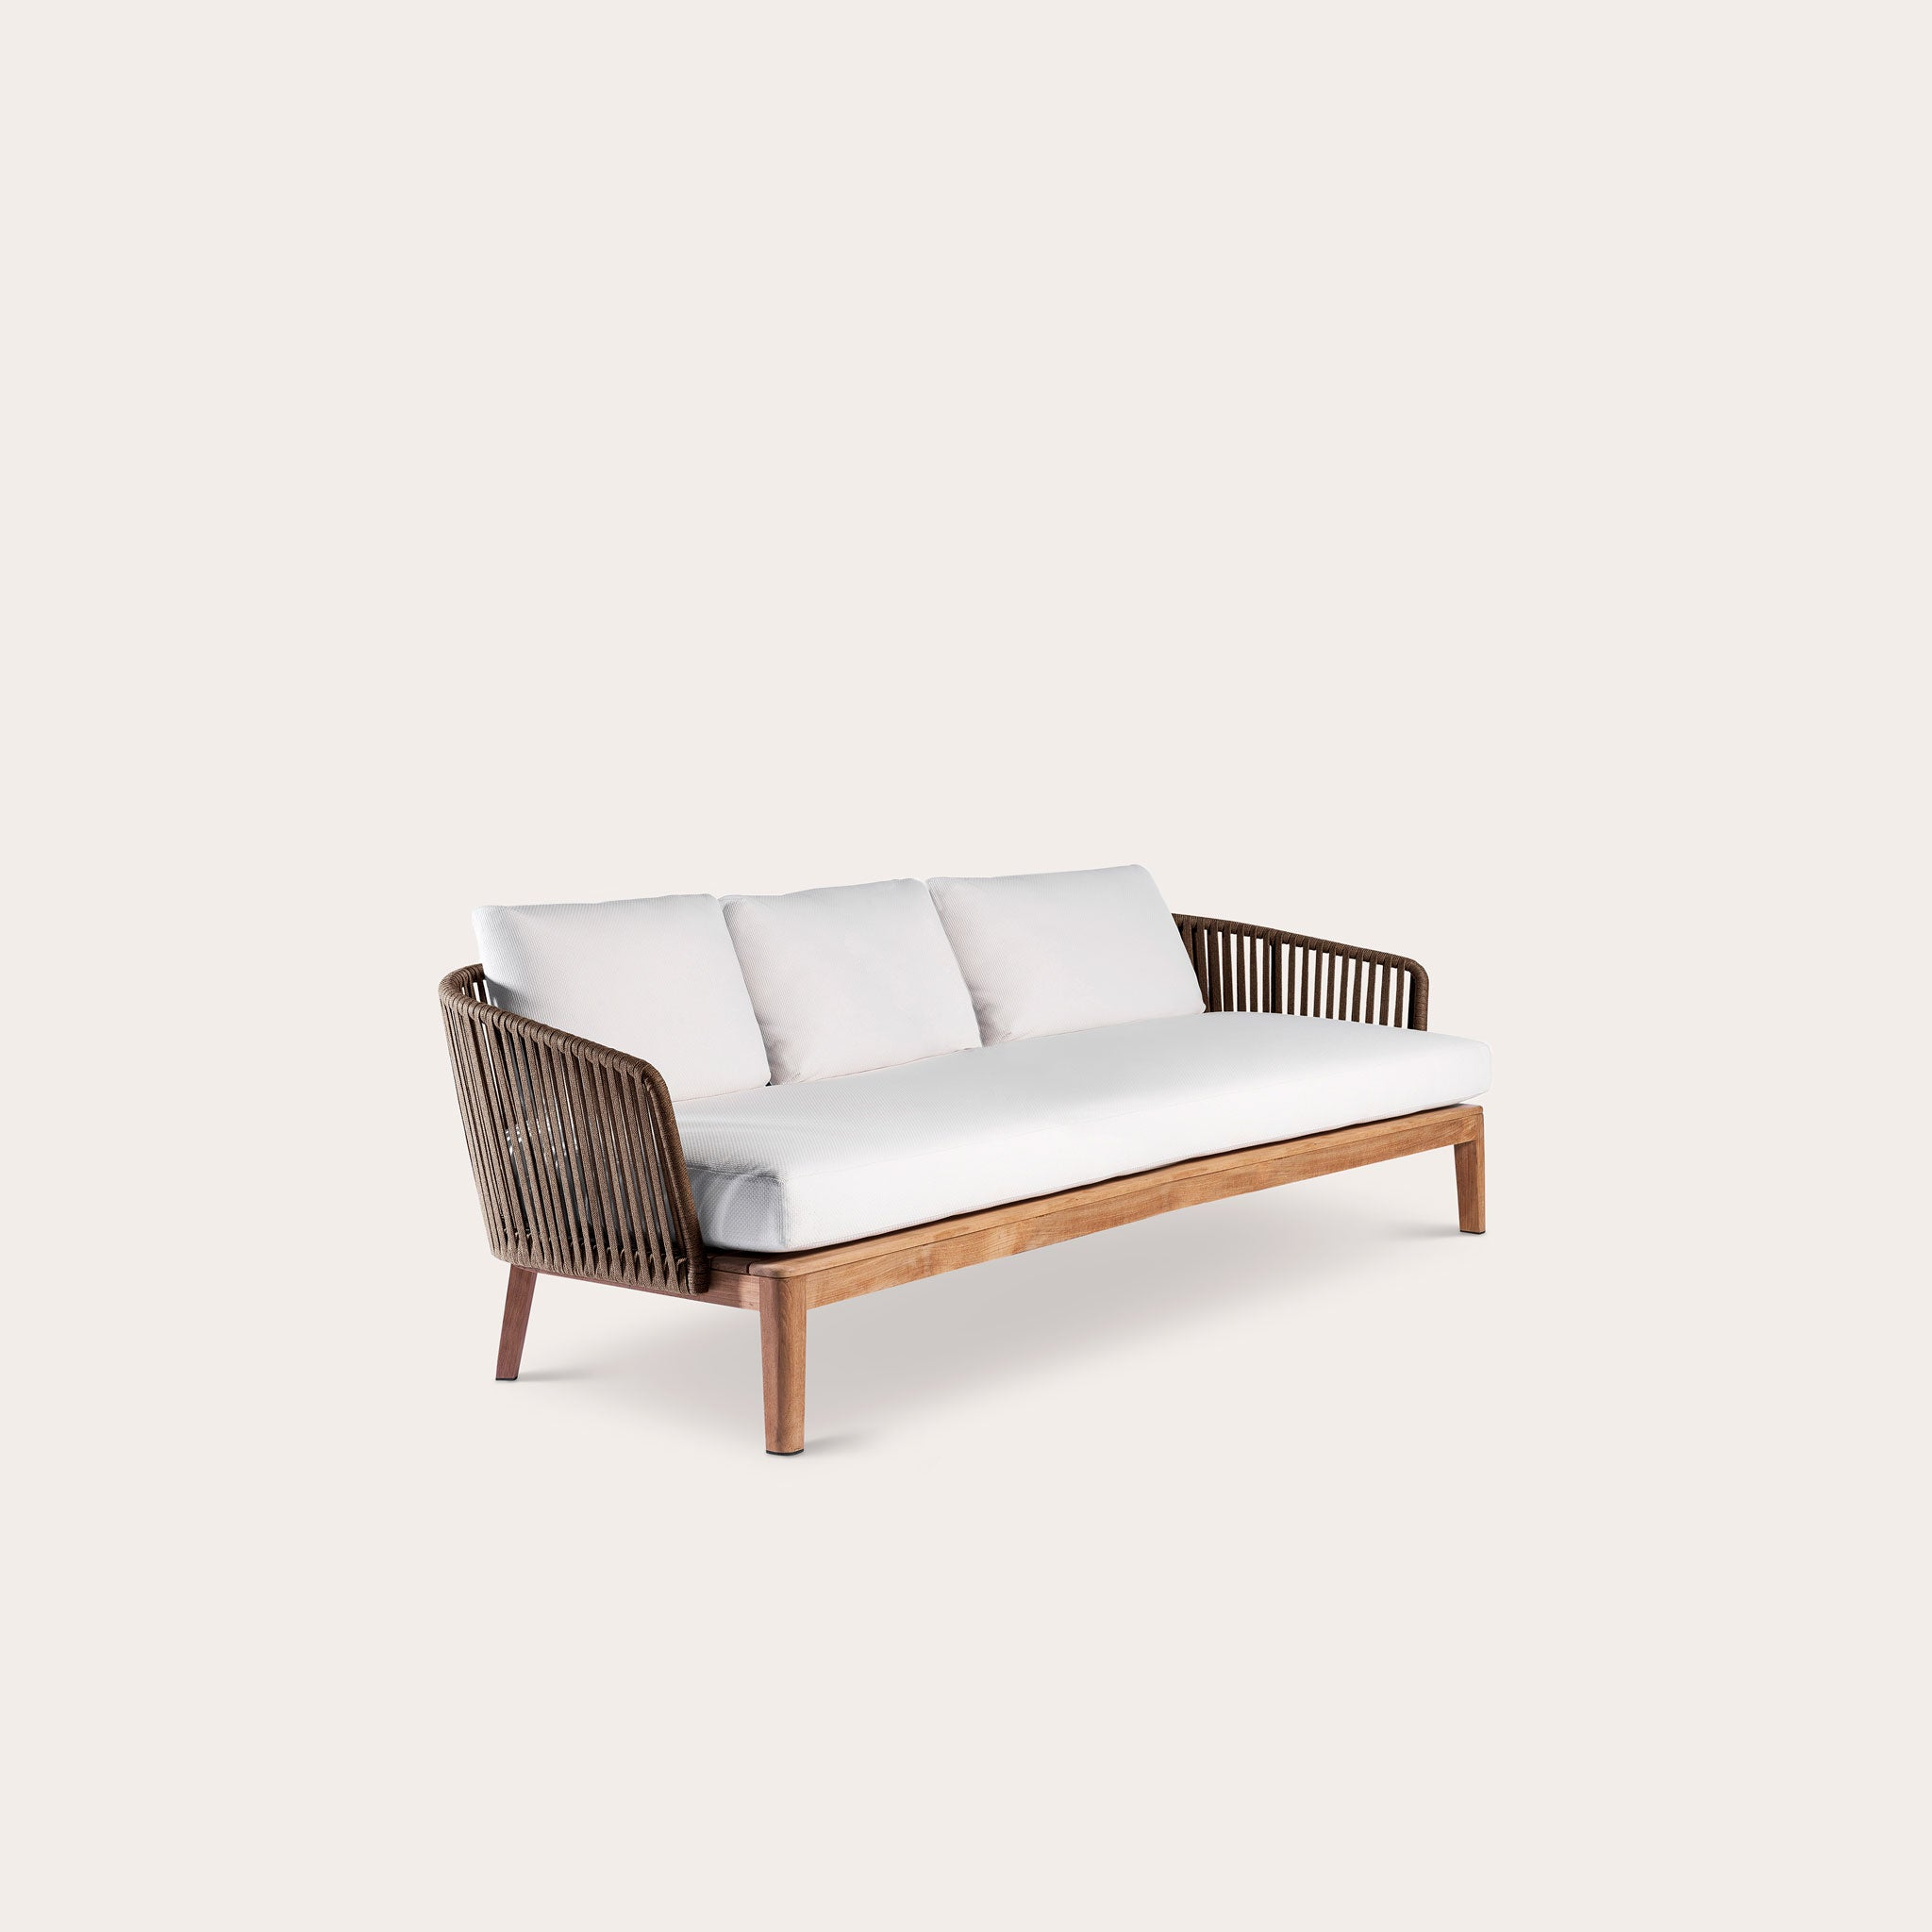 MOOD Sofa Outdoor Studio Segers Designer Furniture Sku: 007-200-11518